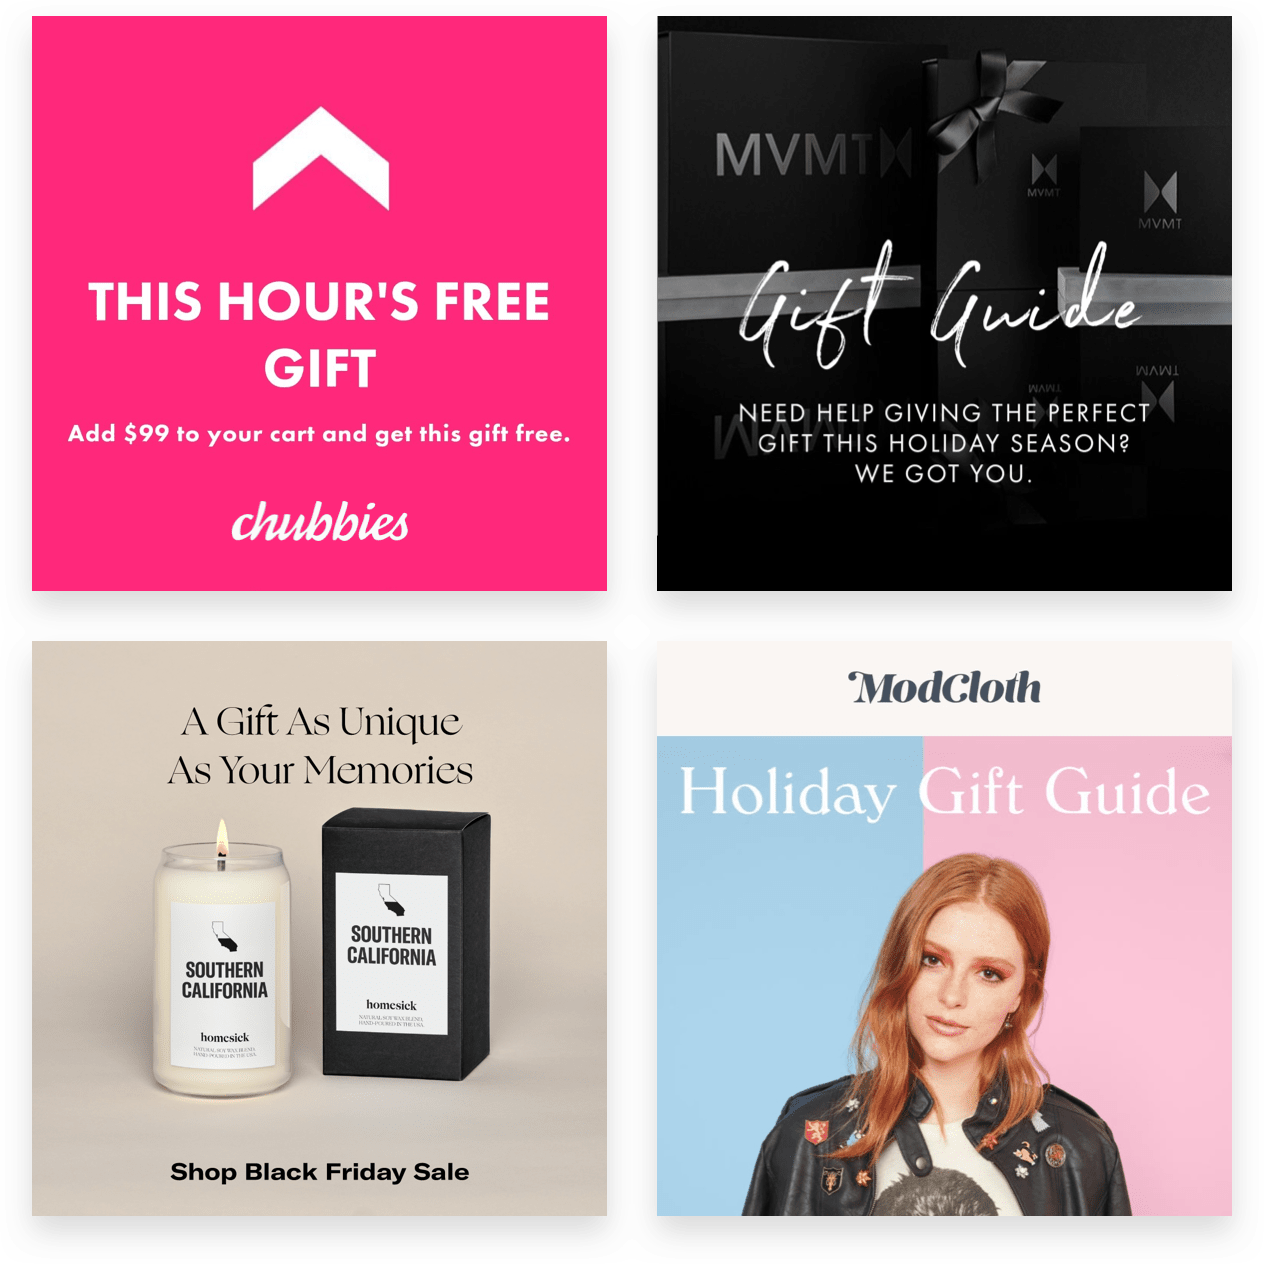 Black Friday ecommerce social media gifting and guide ads